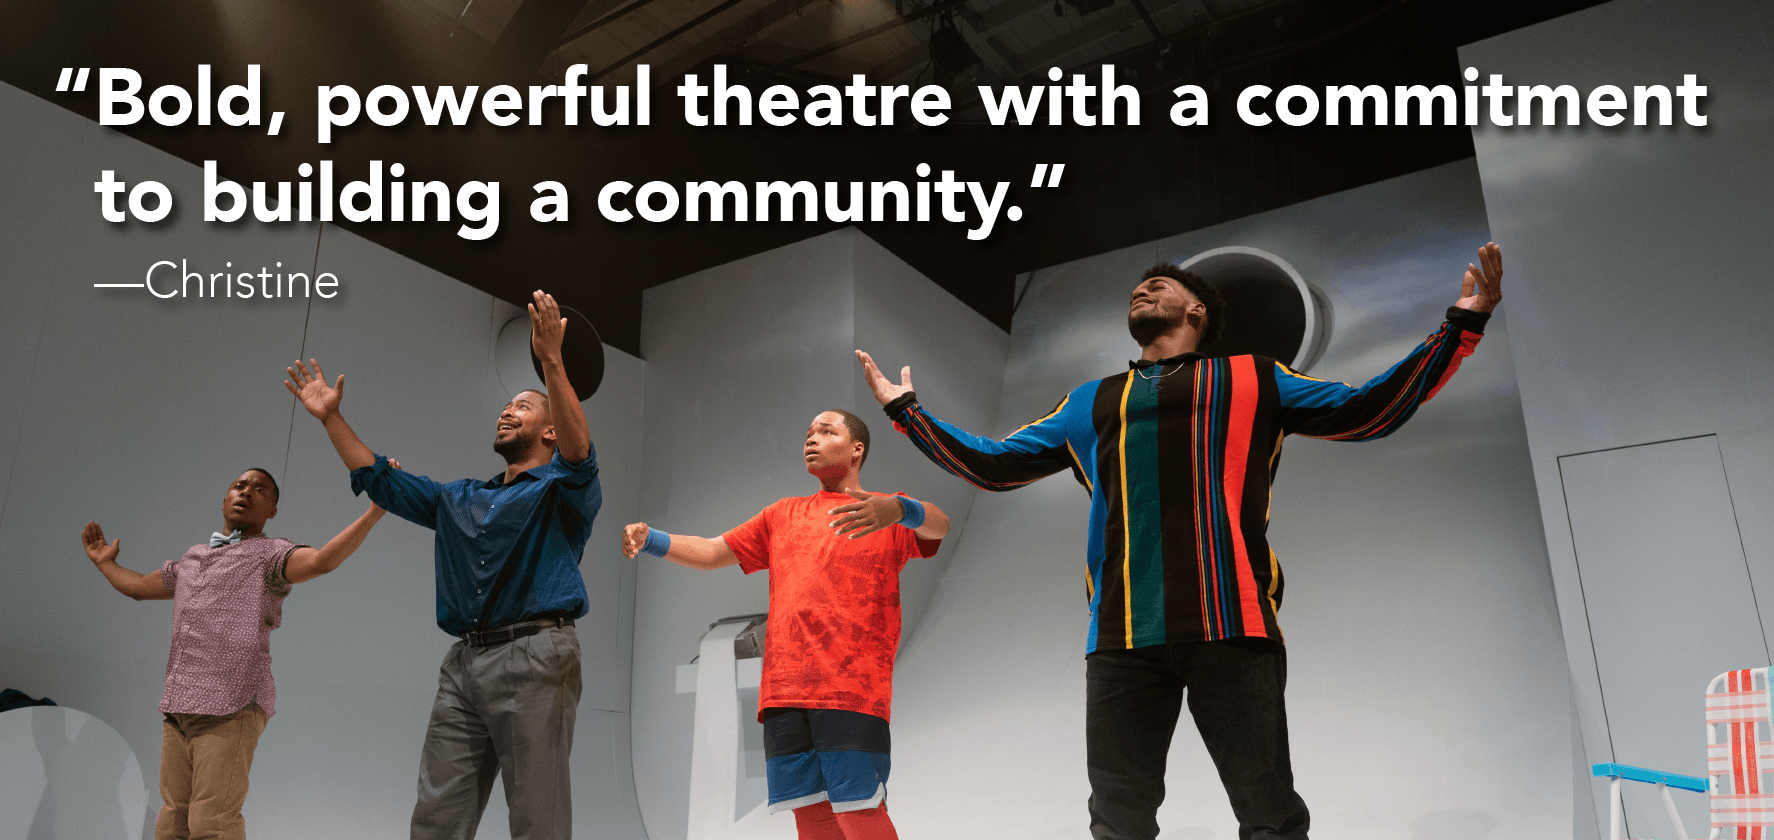 'Bold, powerful theater with a commitment to building a community.' —Christine